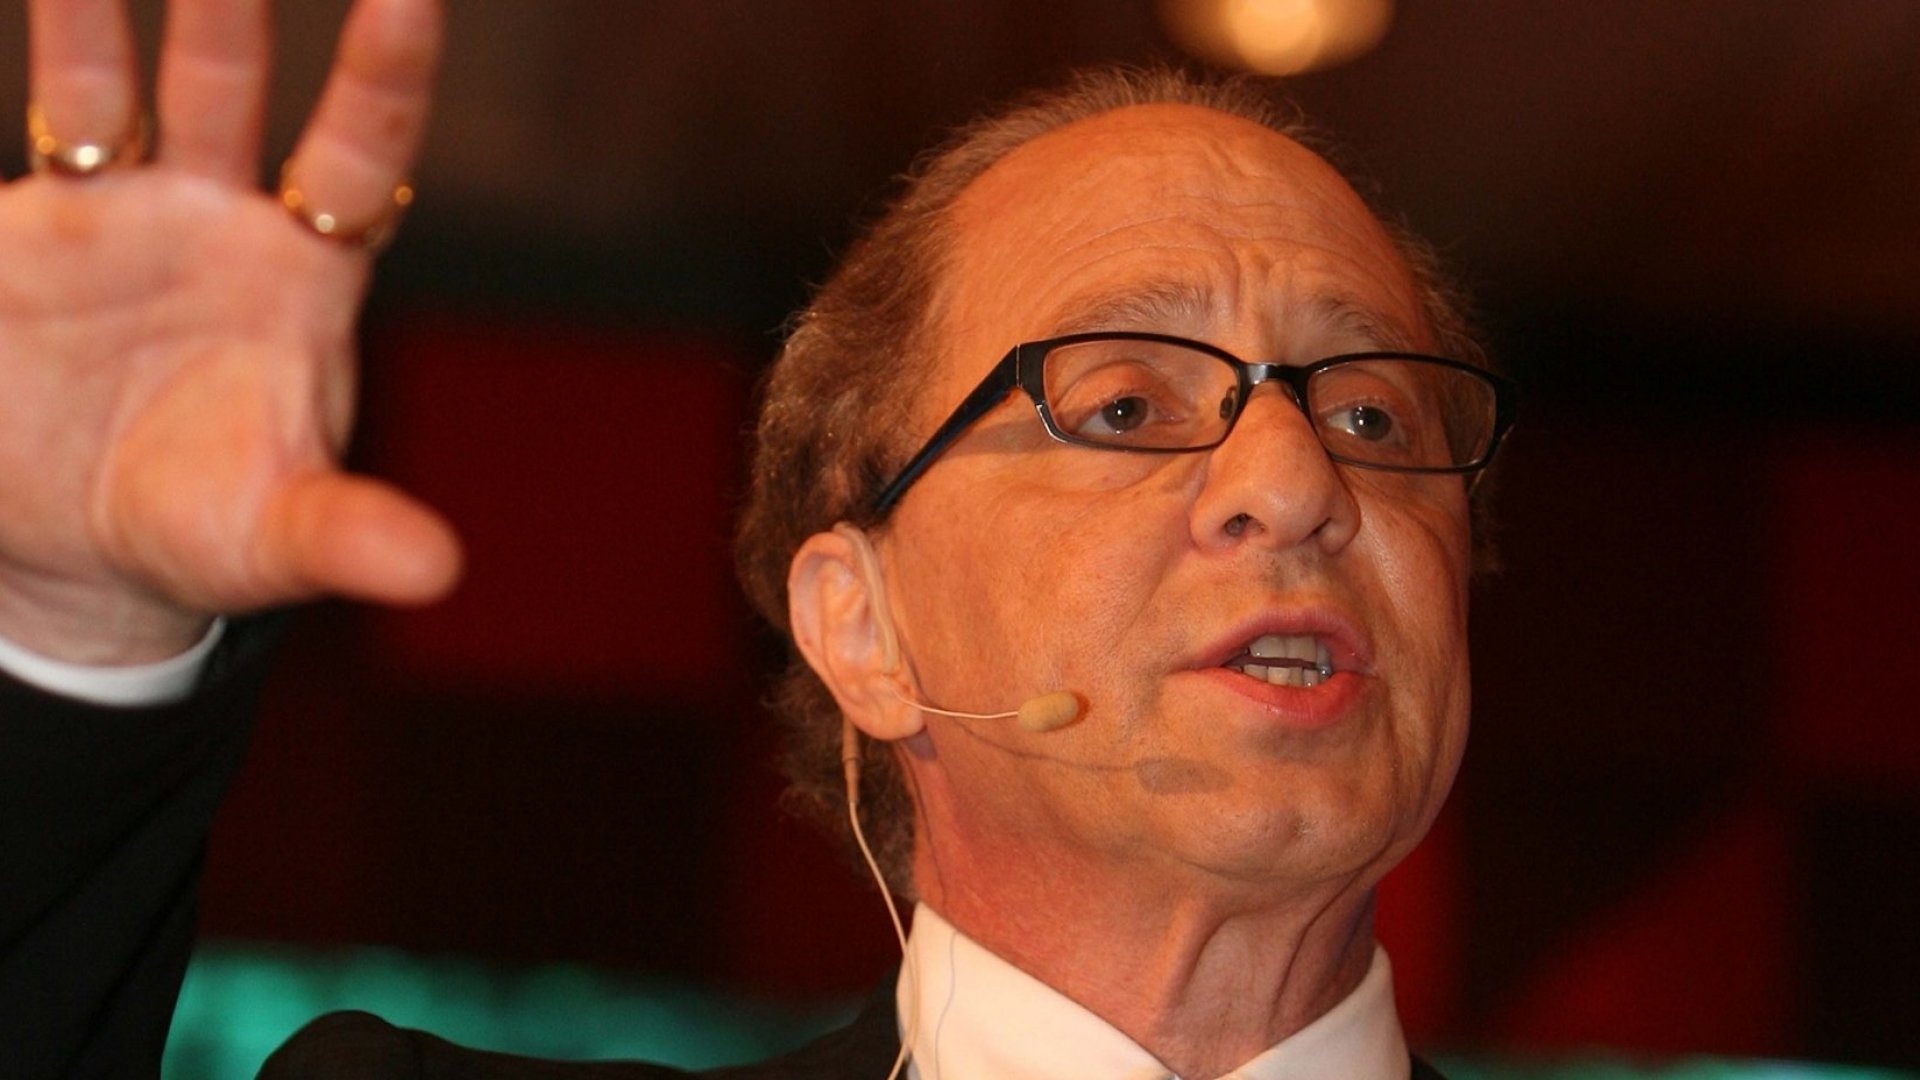 According to Peter Diamandis and Ray Kurzweil, These Are the Most Dangerous and Disruptive Ideas